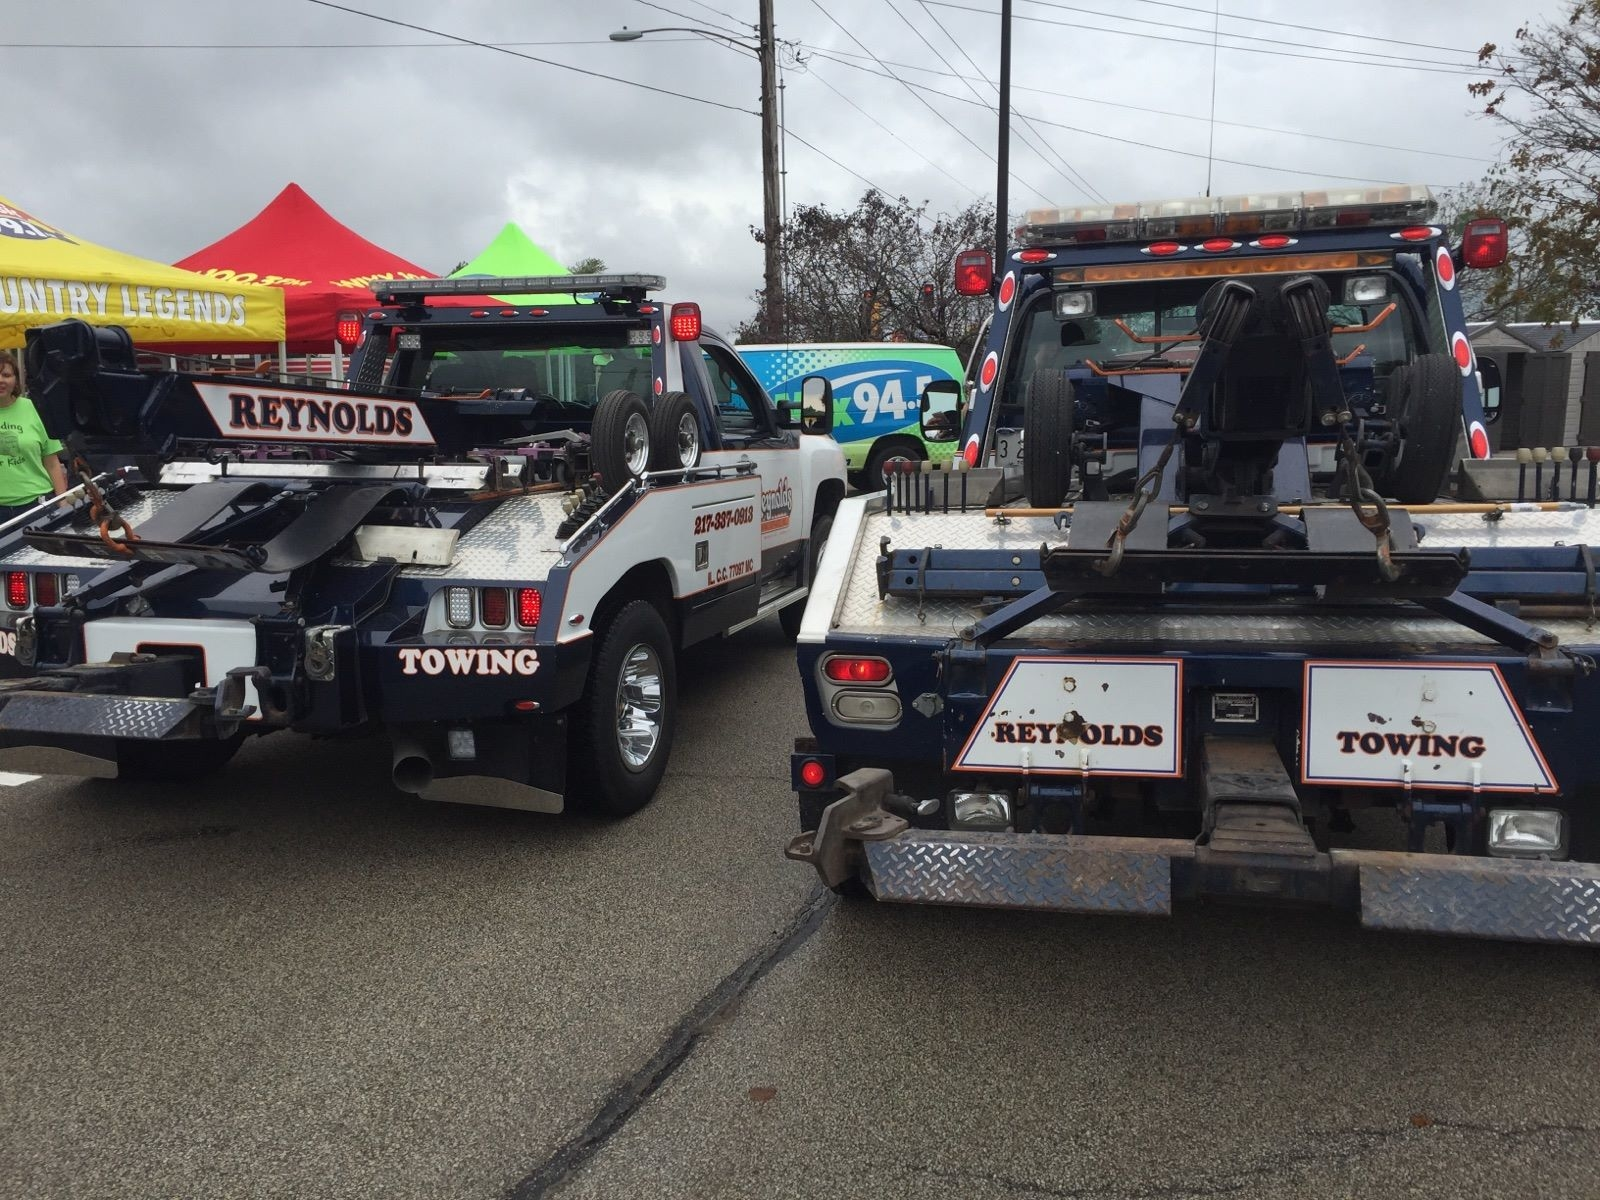 Reynolds Towing Service image 26